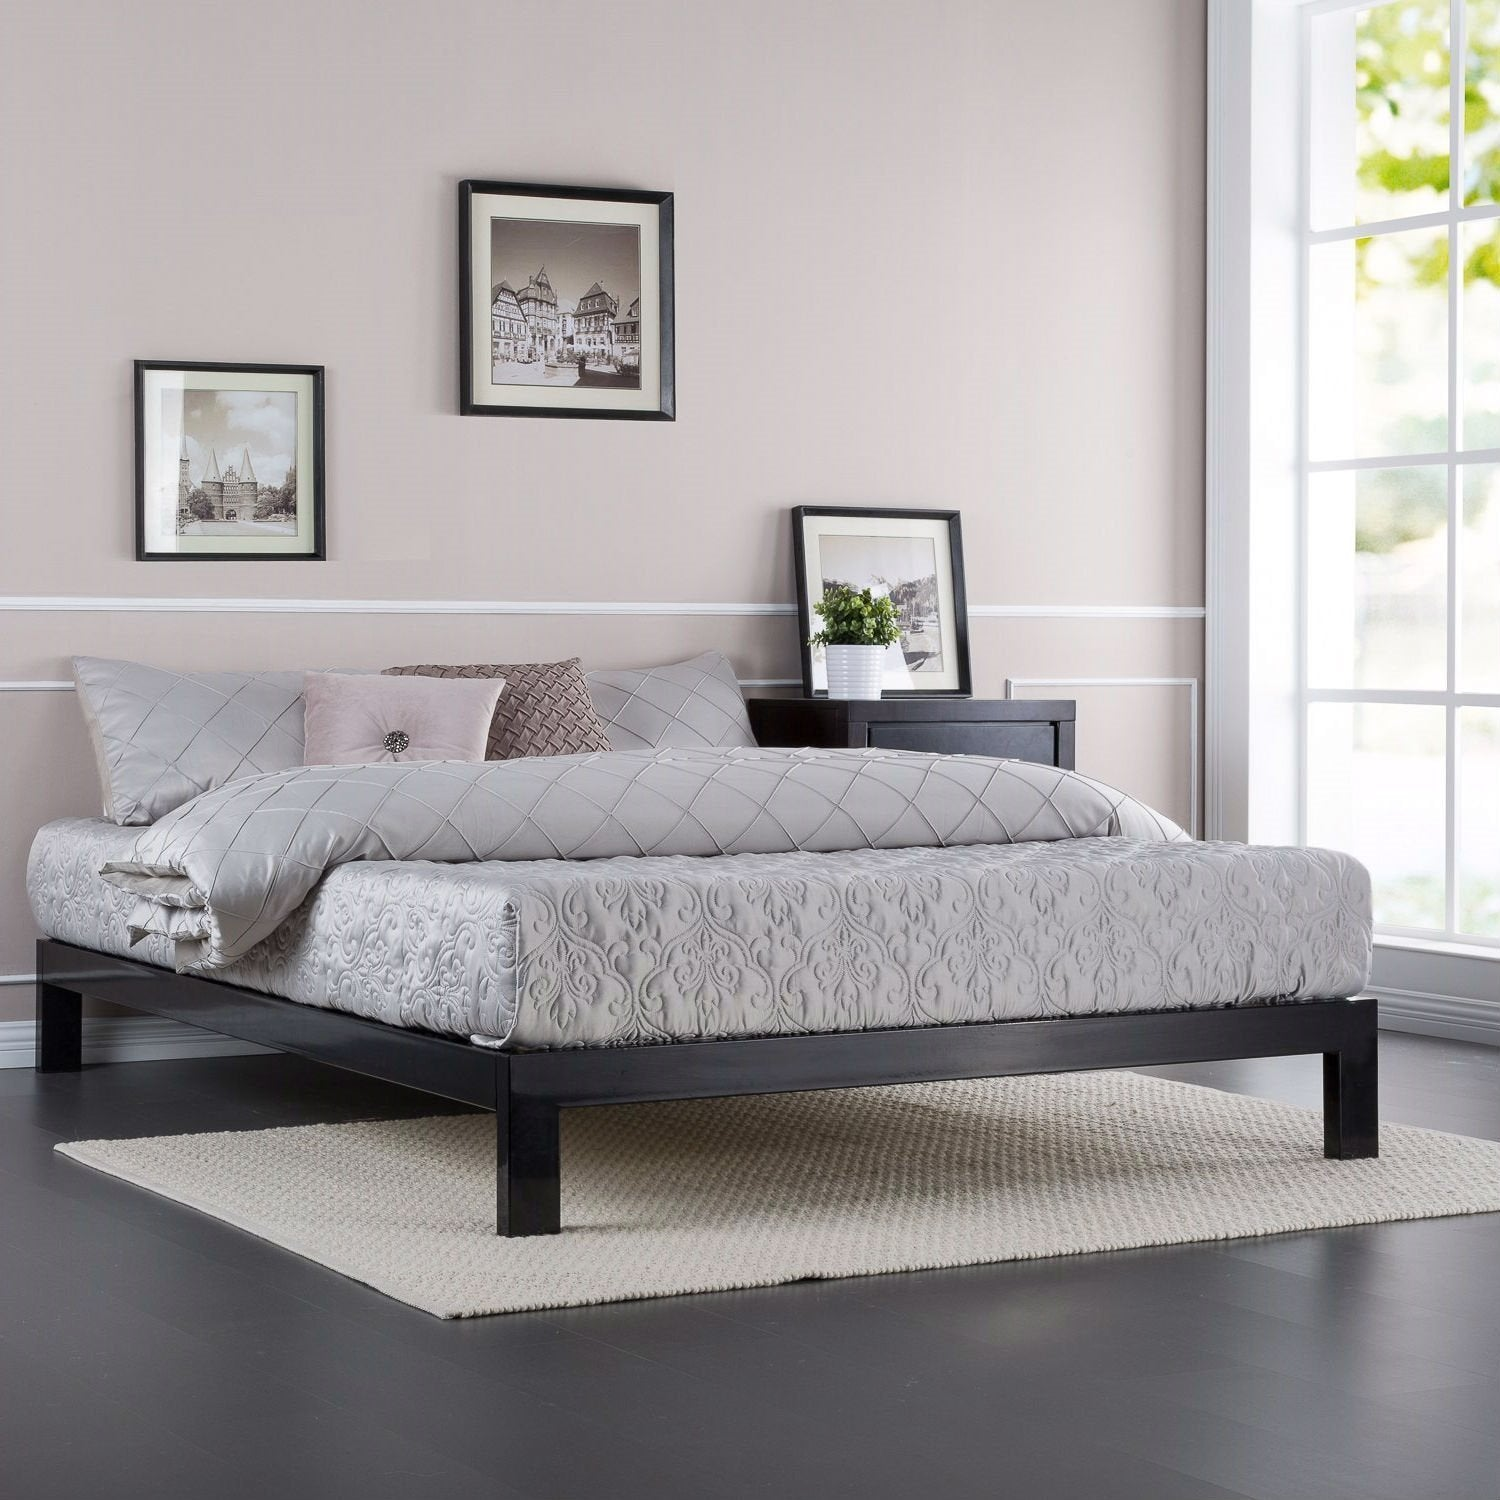 Anest Platform Bed King size.